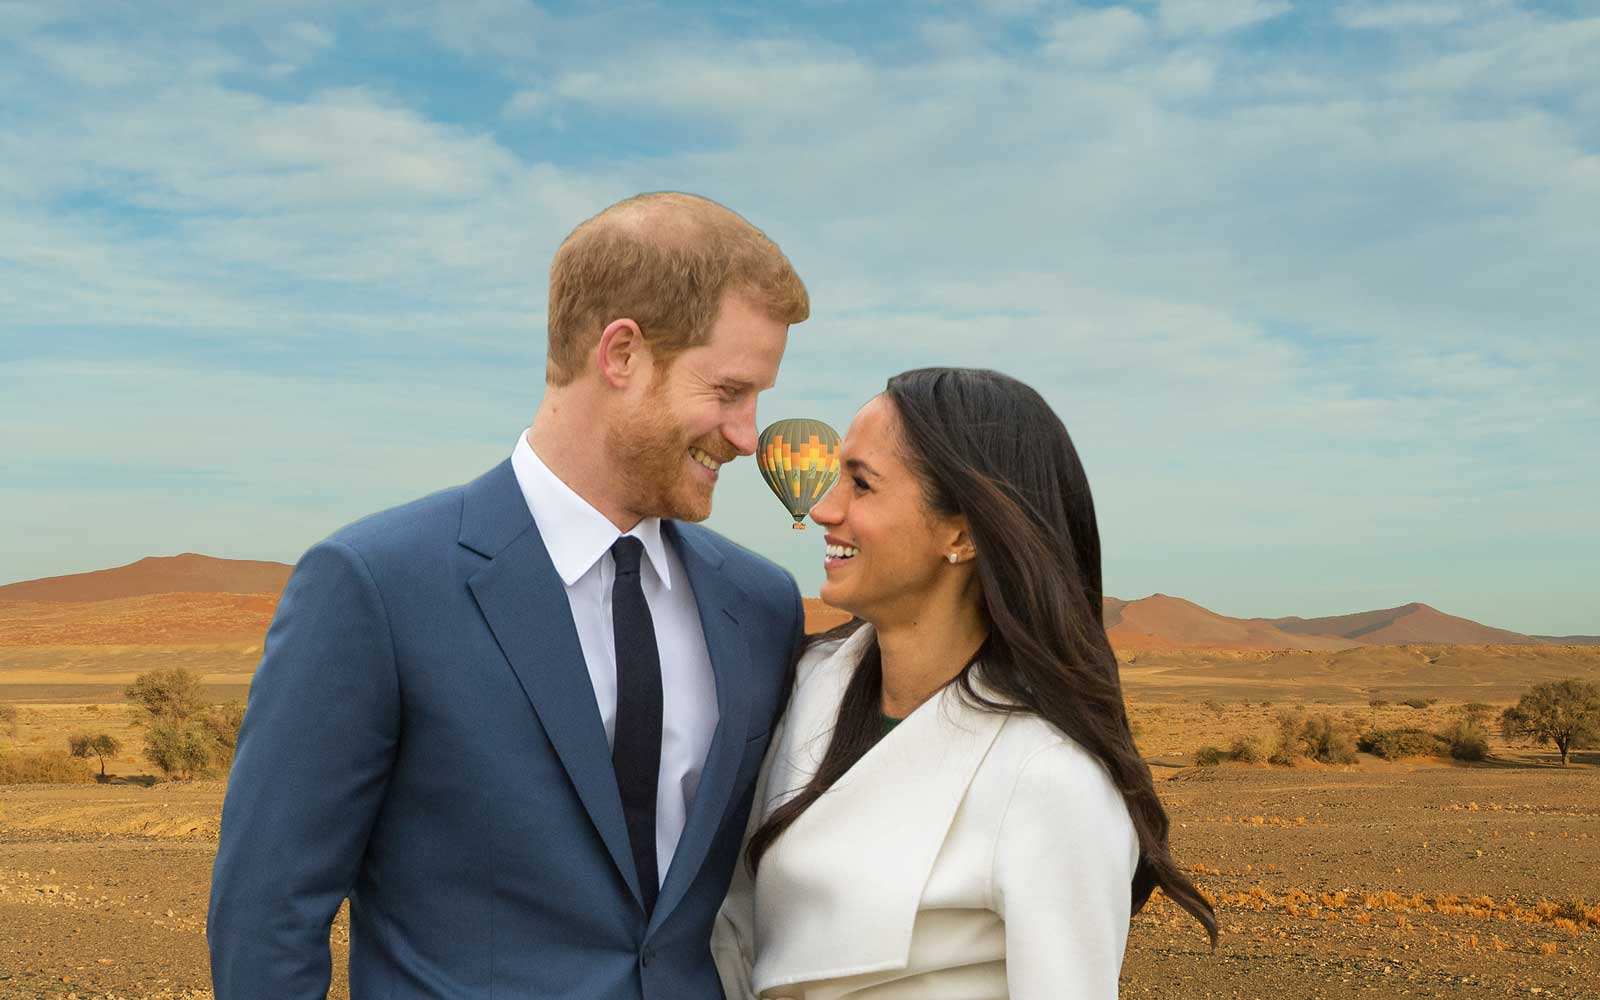 Prince Harry and Meghan Markle Will Honeymoon in Namibia: Here's Why They Made the Perfect Choice